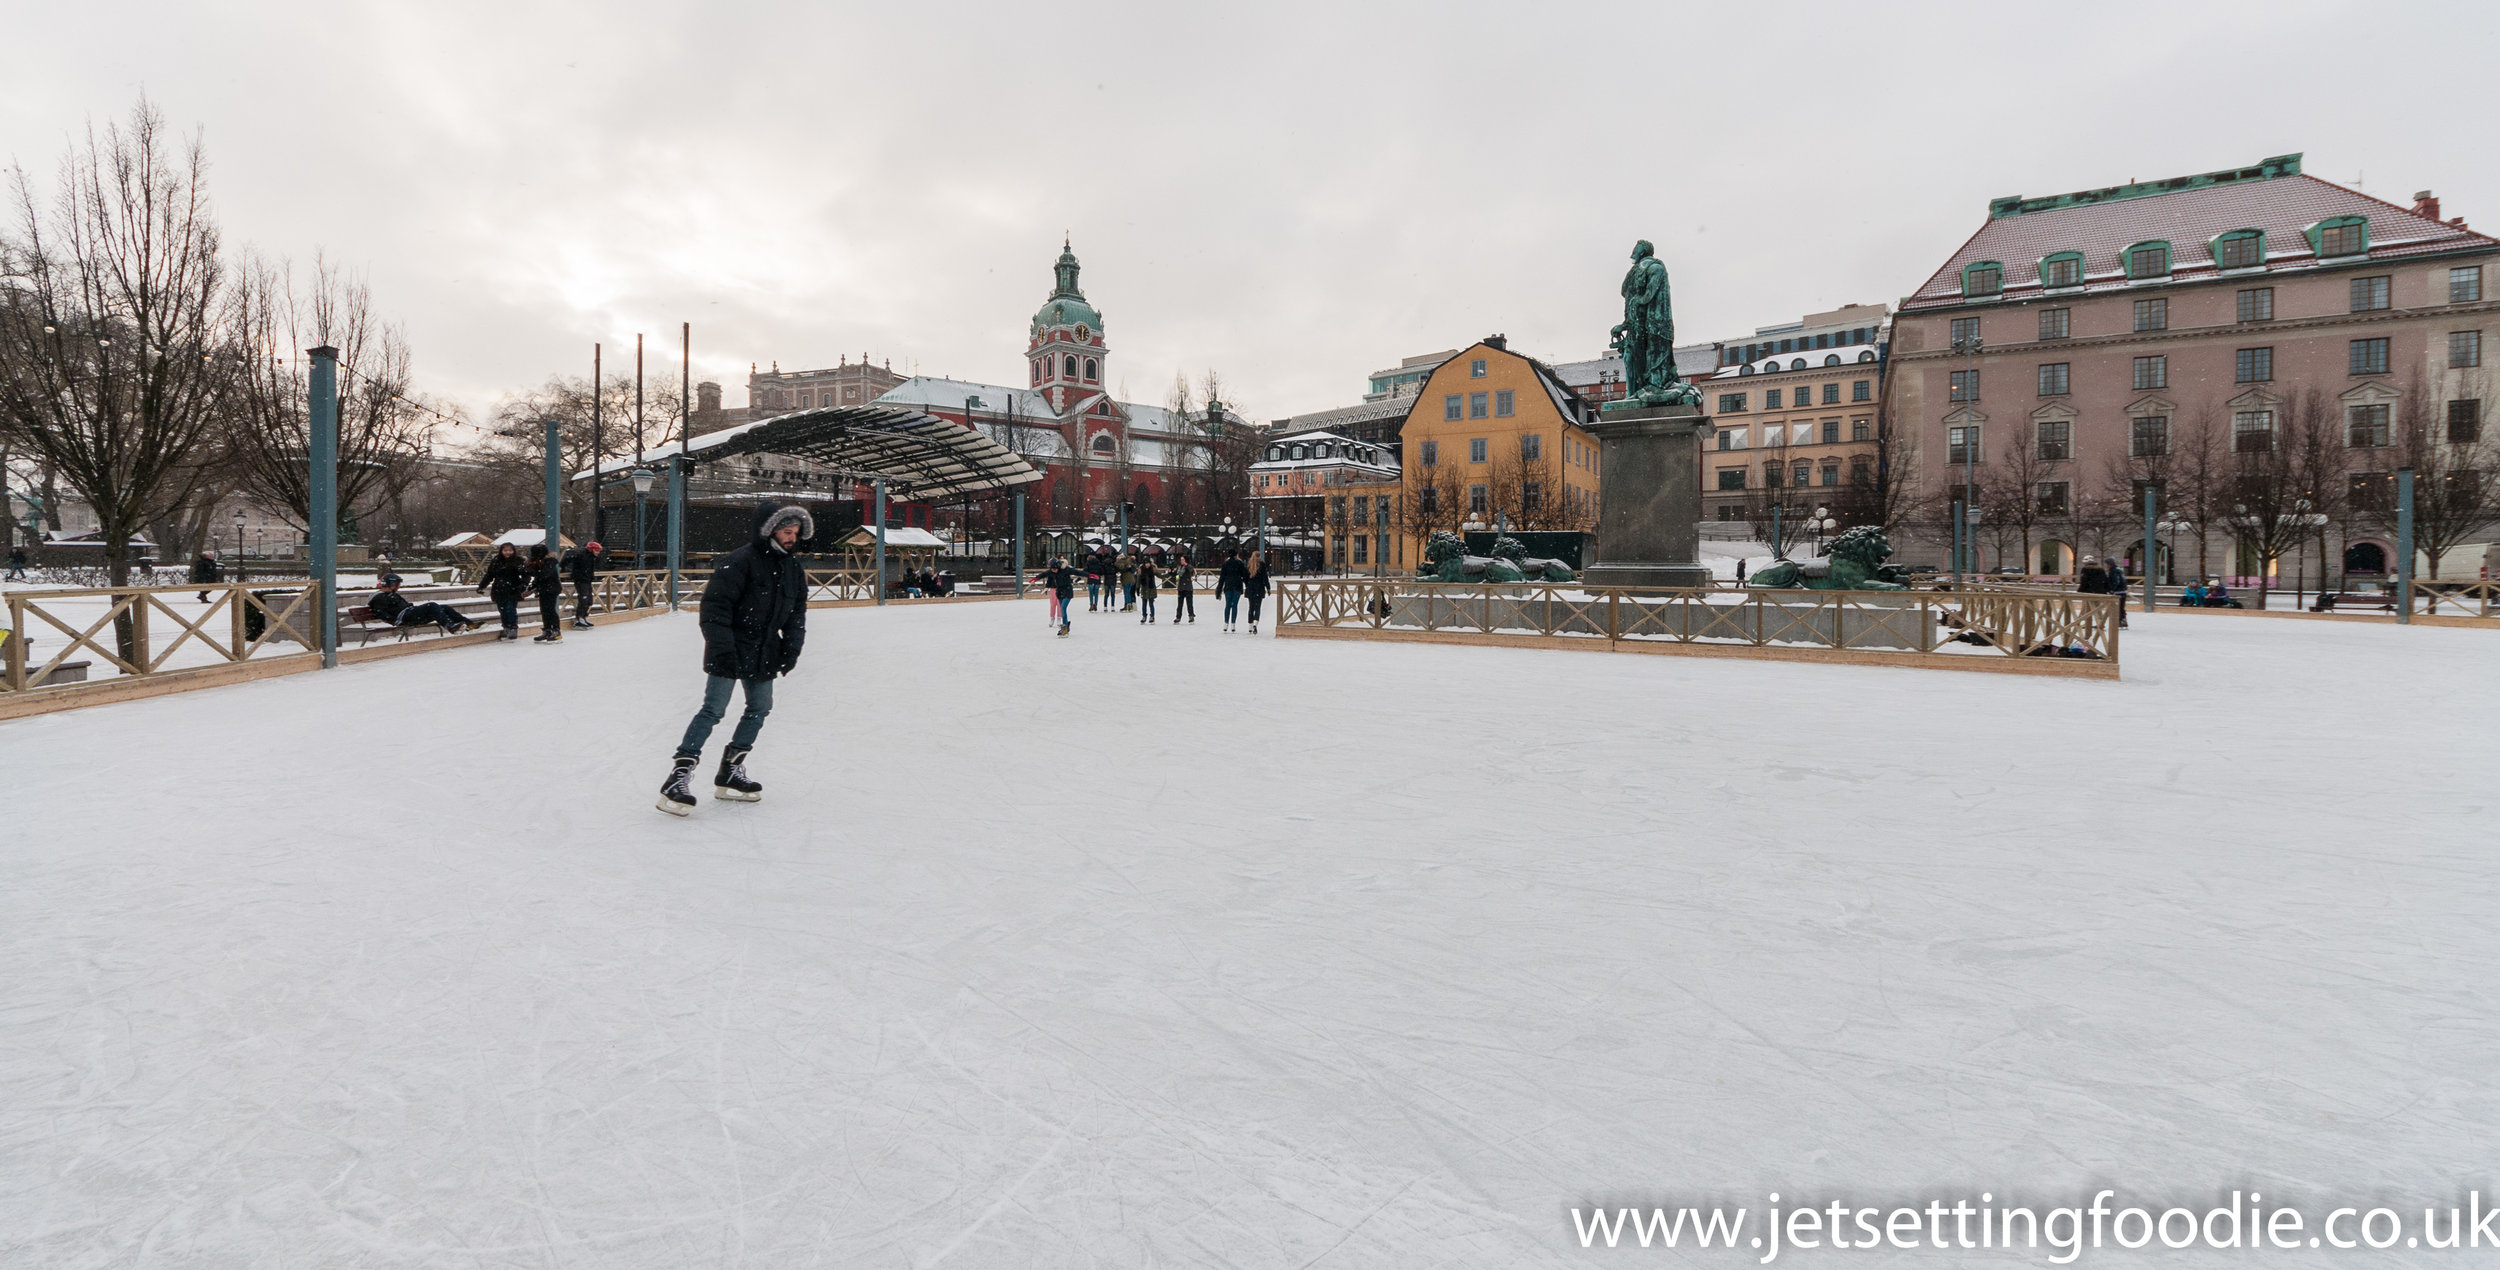 Free ice skating in the centre of Stockholm.